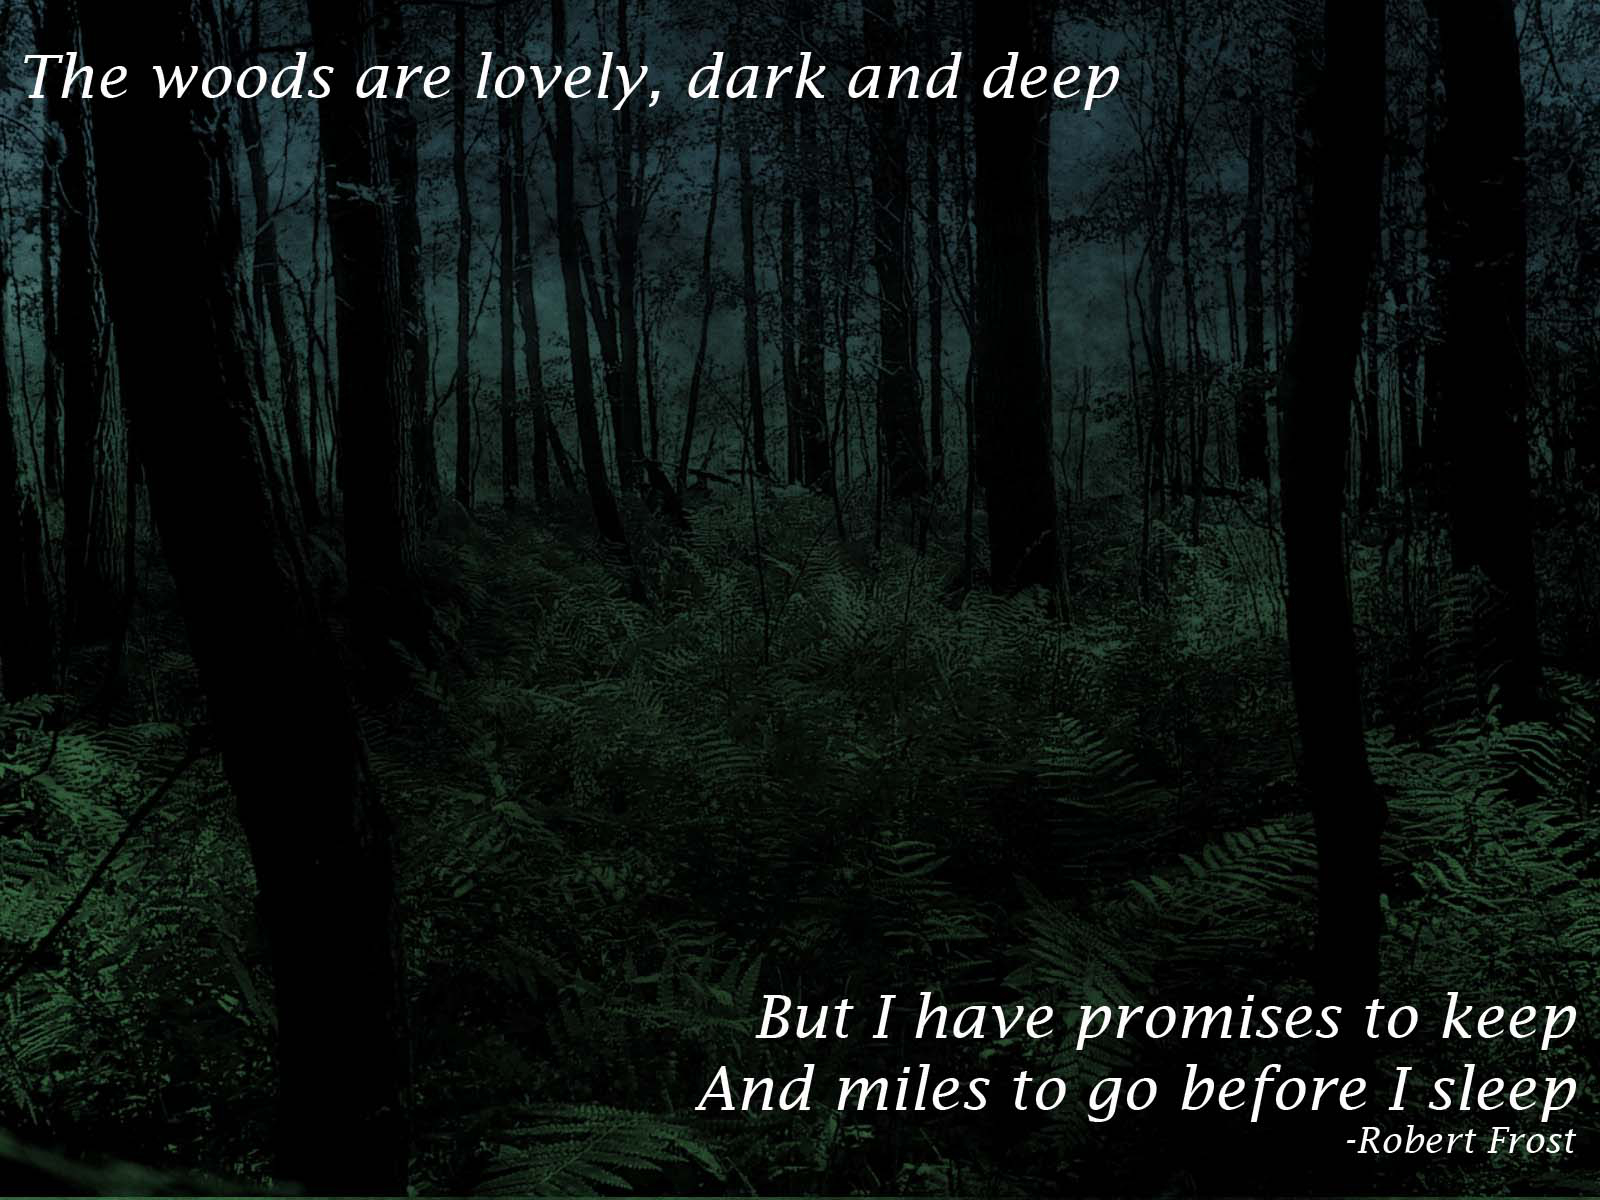 stopping by woods on a snowy evening robert frost motivation the woods are lovely dark and deep but i have promises to keep